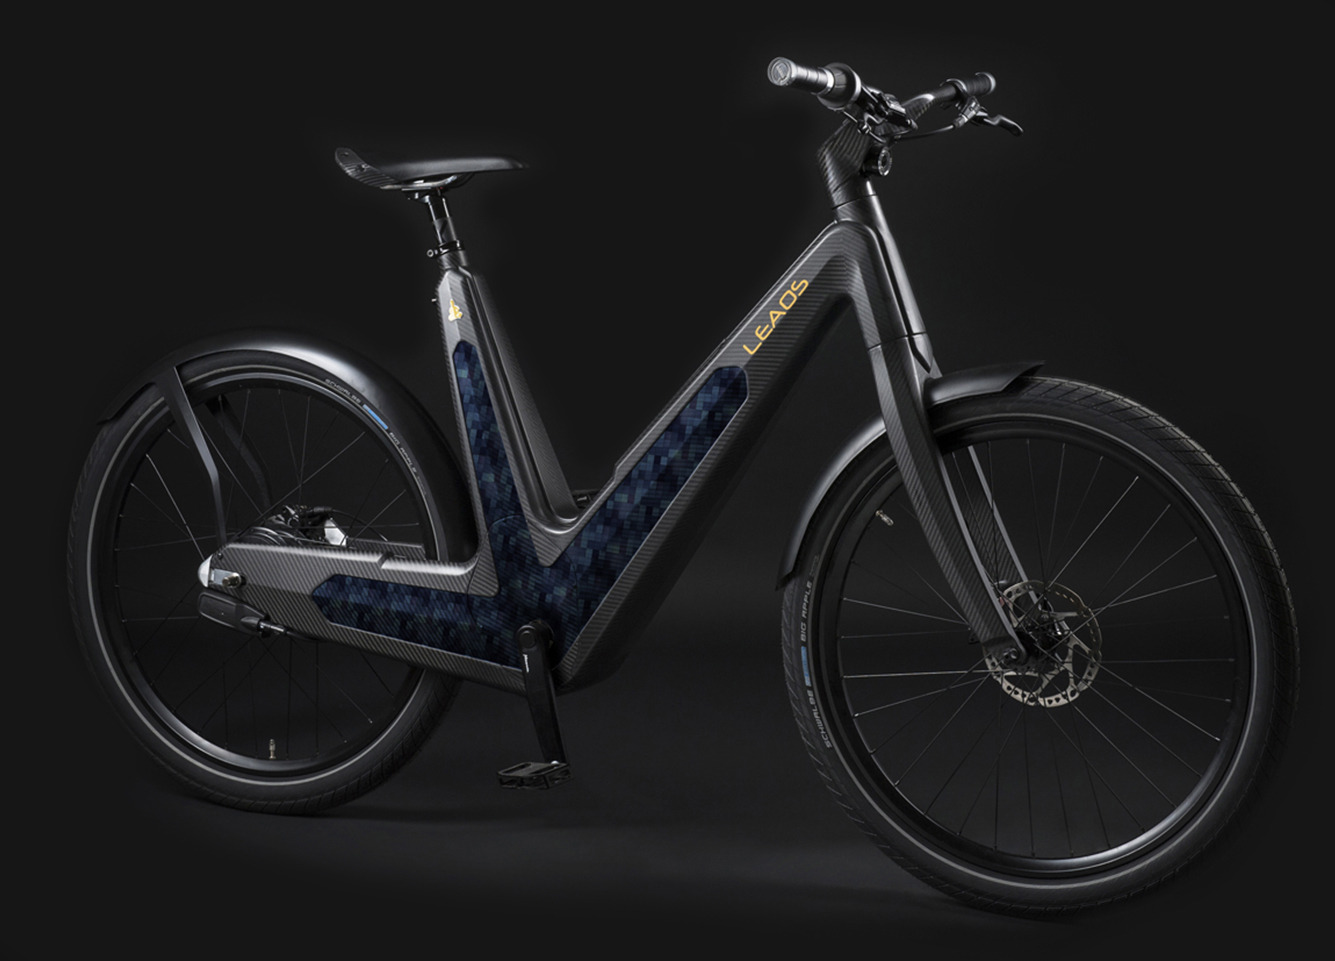 xleaos-solar-urban-bike-solar-battery-loading-new-panel-blue.jpg.pagespeed.ic.yDvD1wNeTO